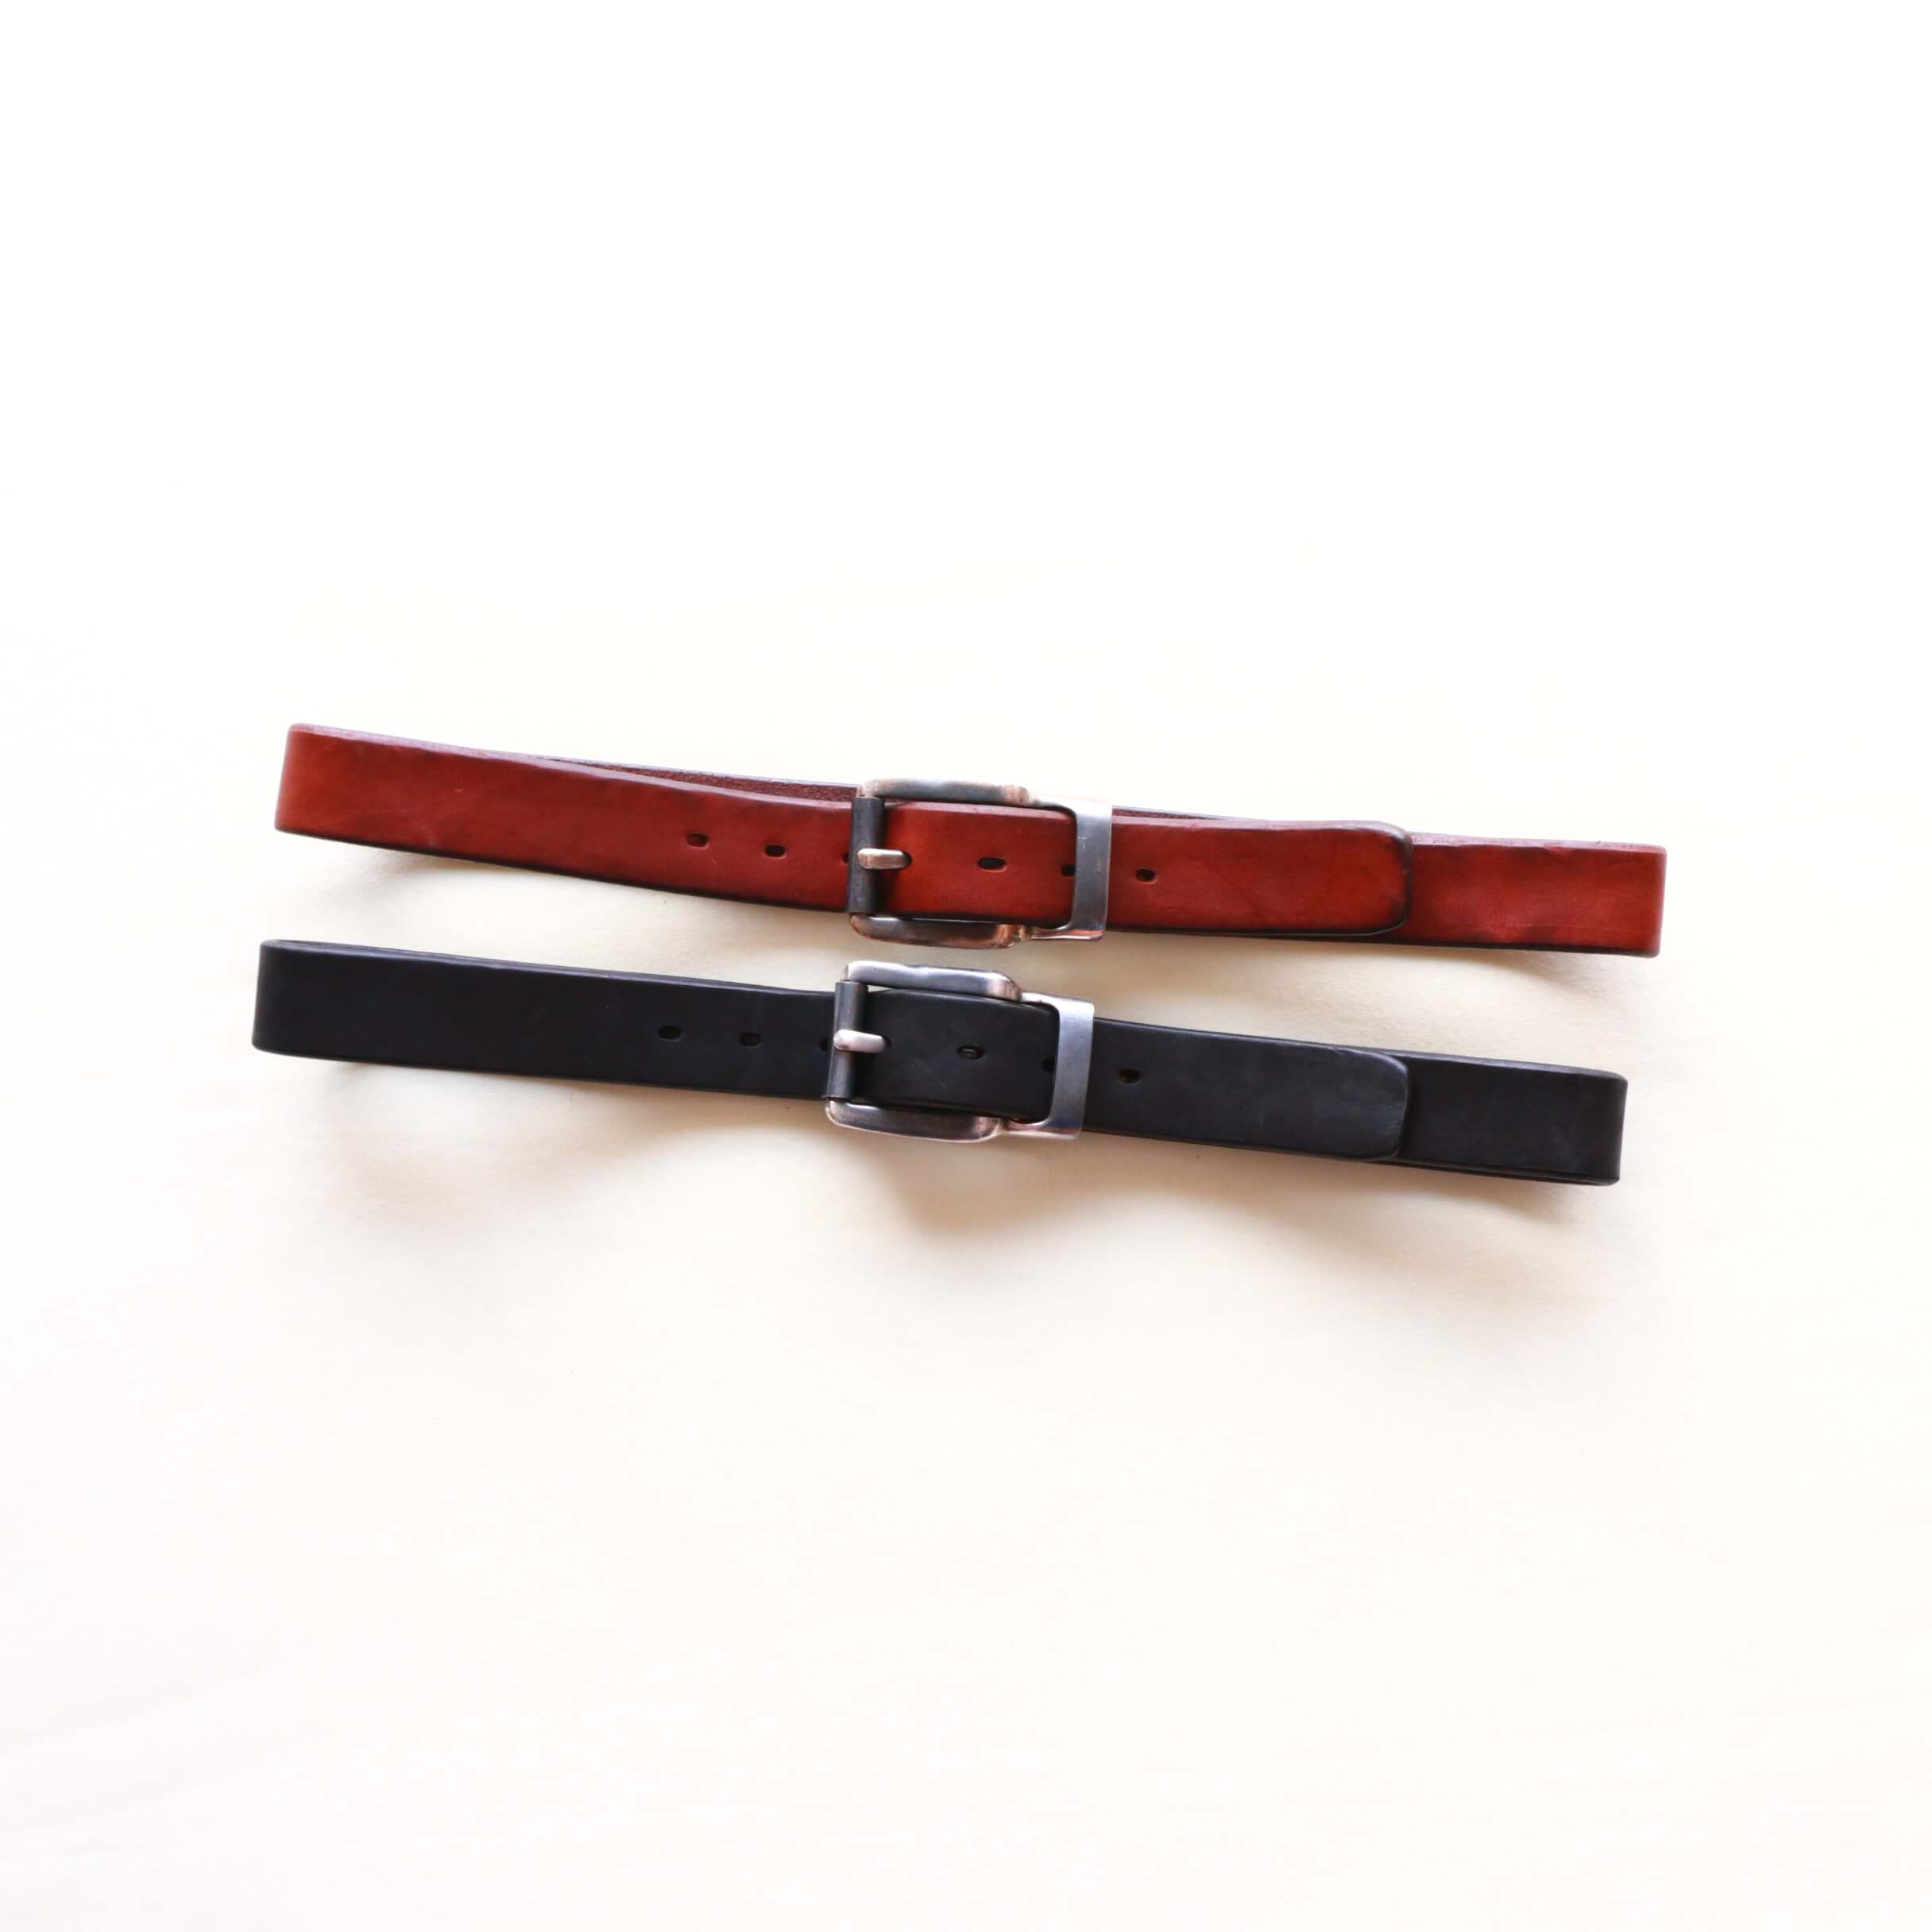 Vintage Works ヴィンテージワークス Leather belt レザーベルト DH5638